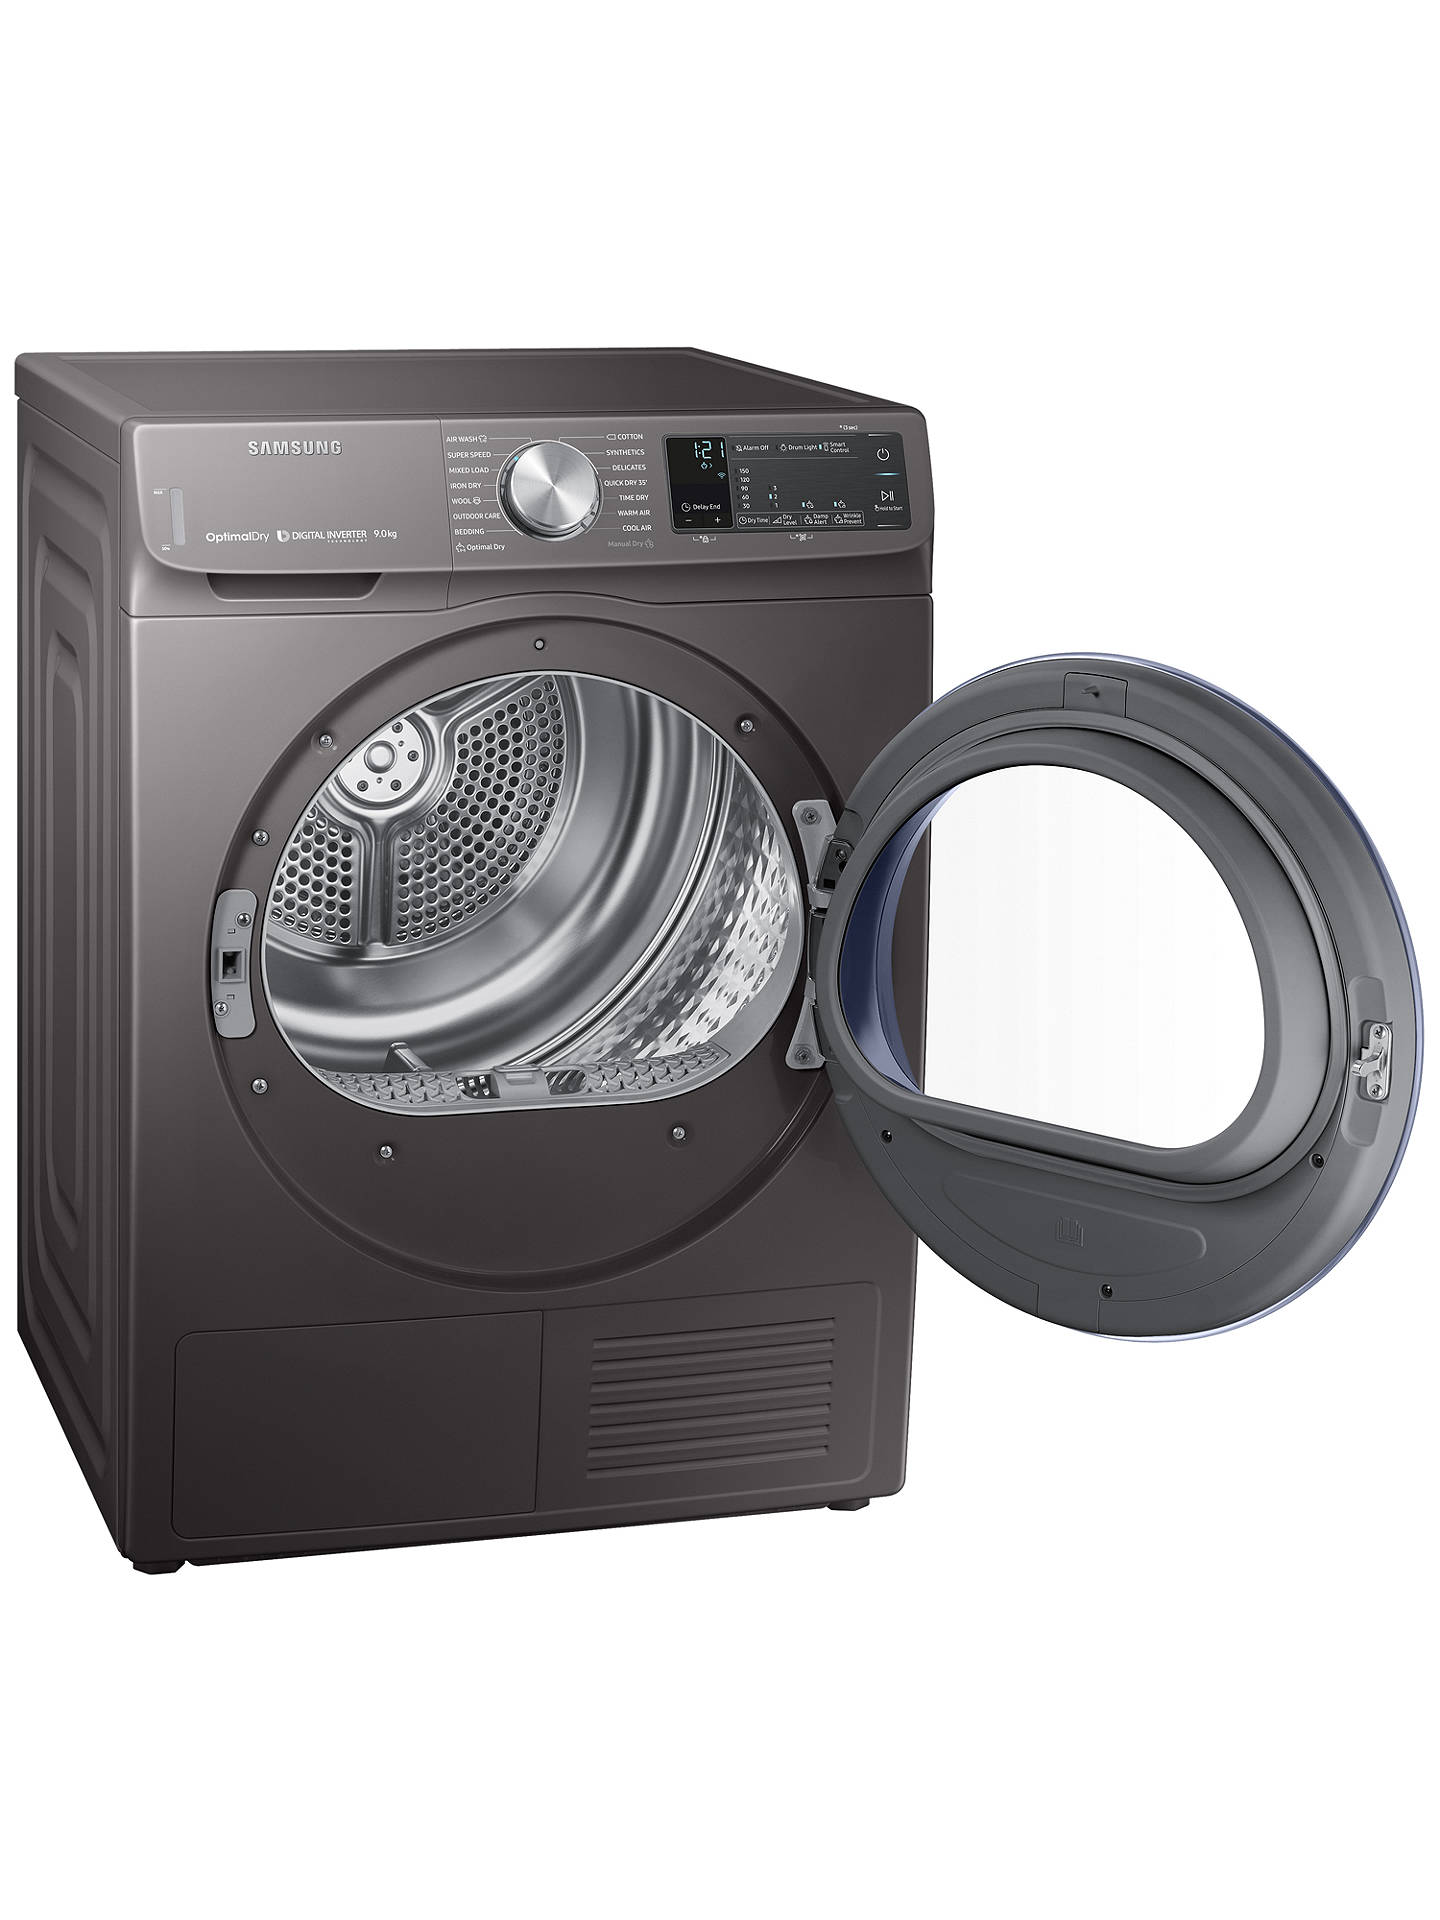 Buy Samsung DV90N62642X Heat Pump Tumble Dryer, 9kg Load, A+++ Energy Rating, Graphite Grey Online at johnlewis.com